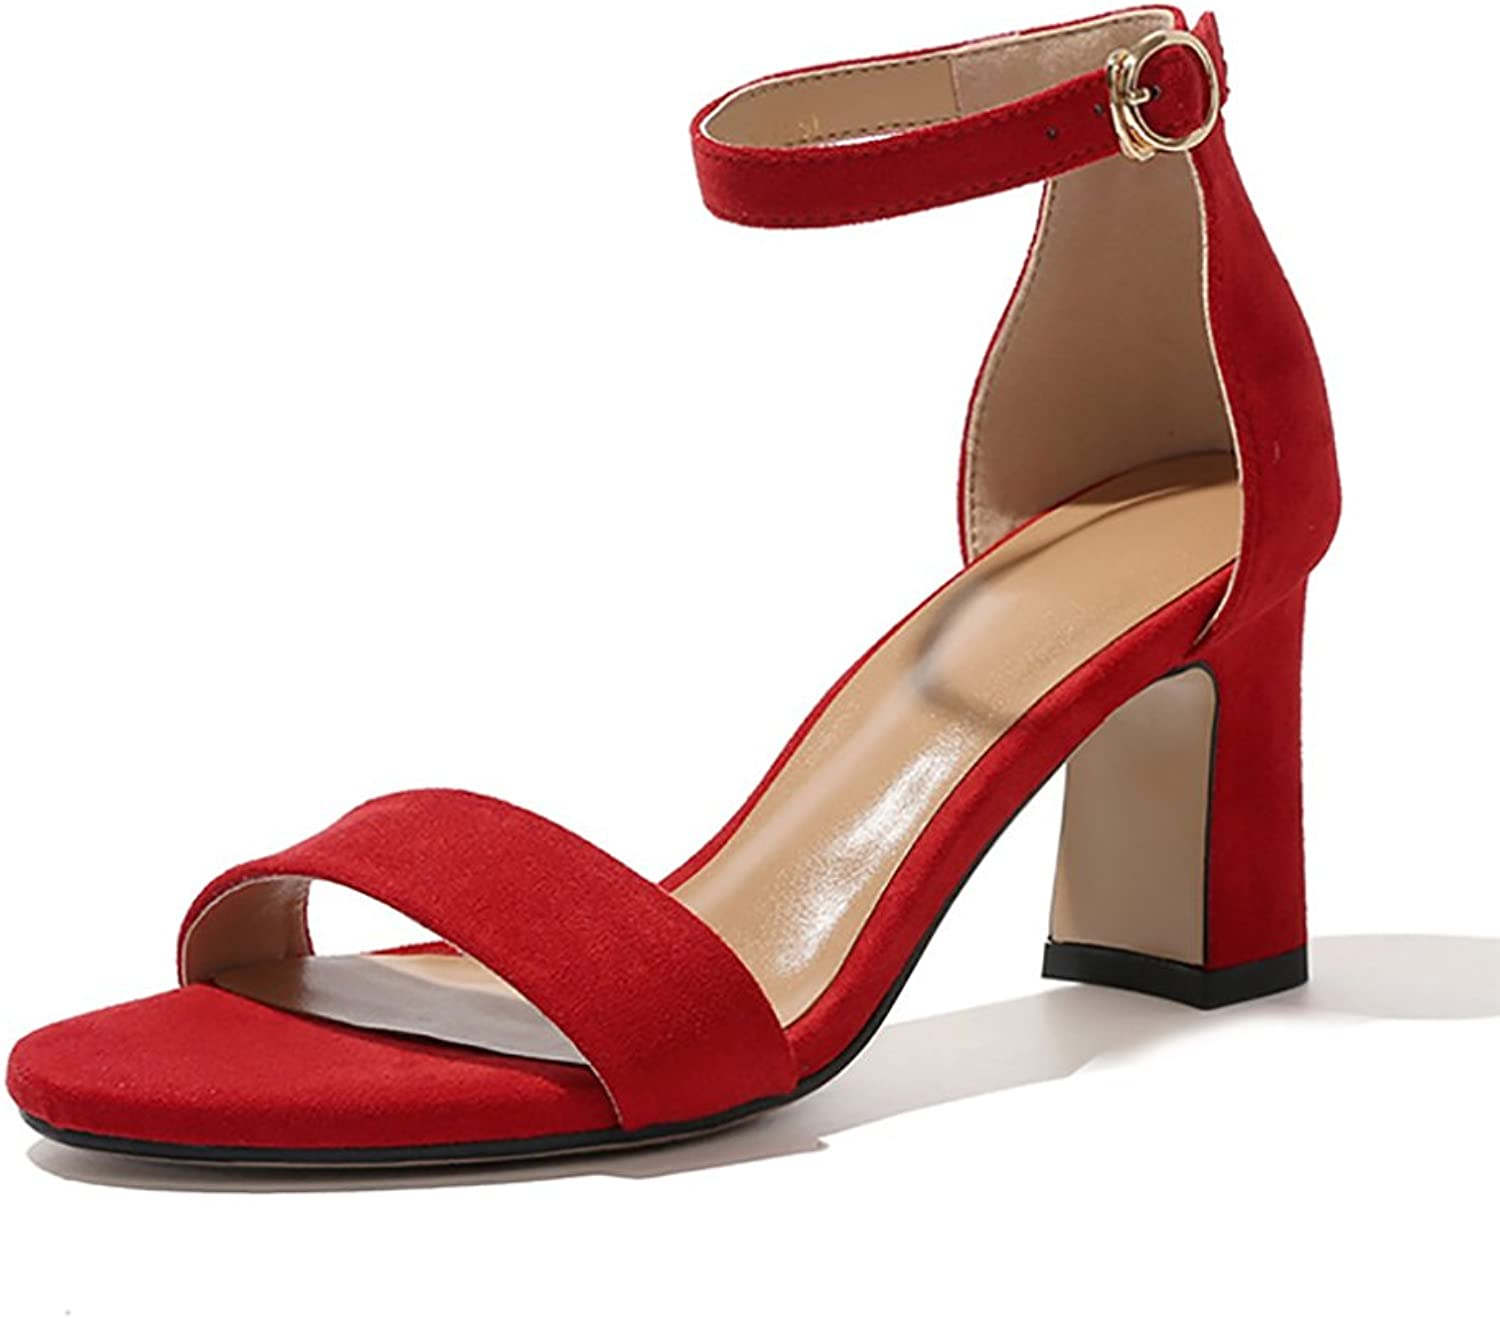 Roman Sandals Women's Summer Sexy Ankle Straps High Heels ( color   Red , Size   36 )